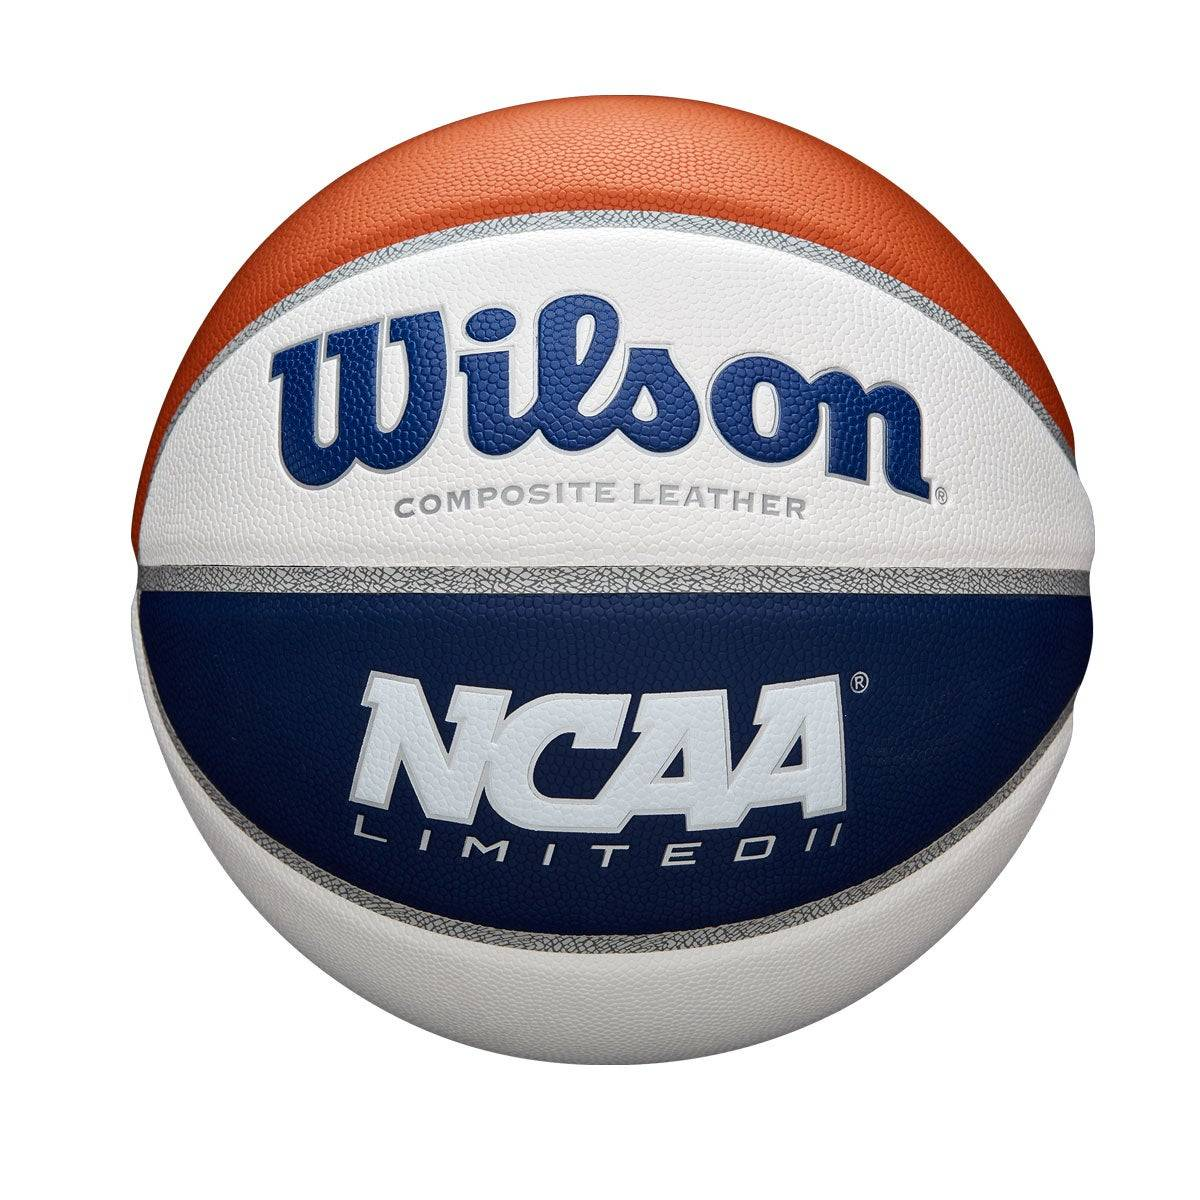 """Wilson NCAA Limited Basketball in Royal / White / Brown - Size: Official - 29.5""""  - Unisex - Royal/White/Brown - Size: Official - 29.5"""""""